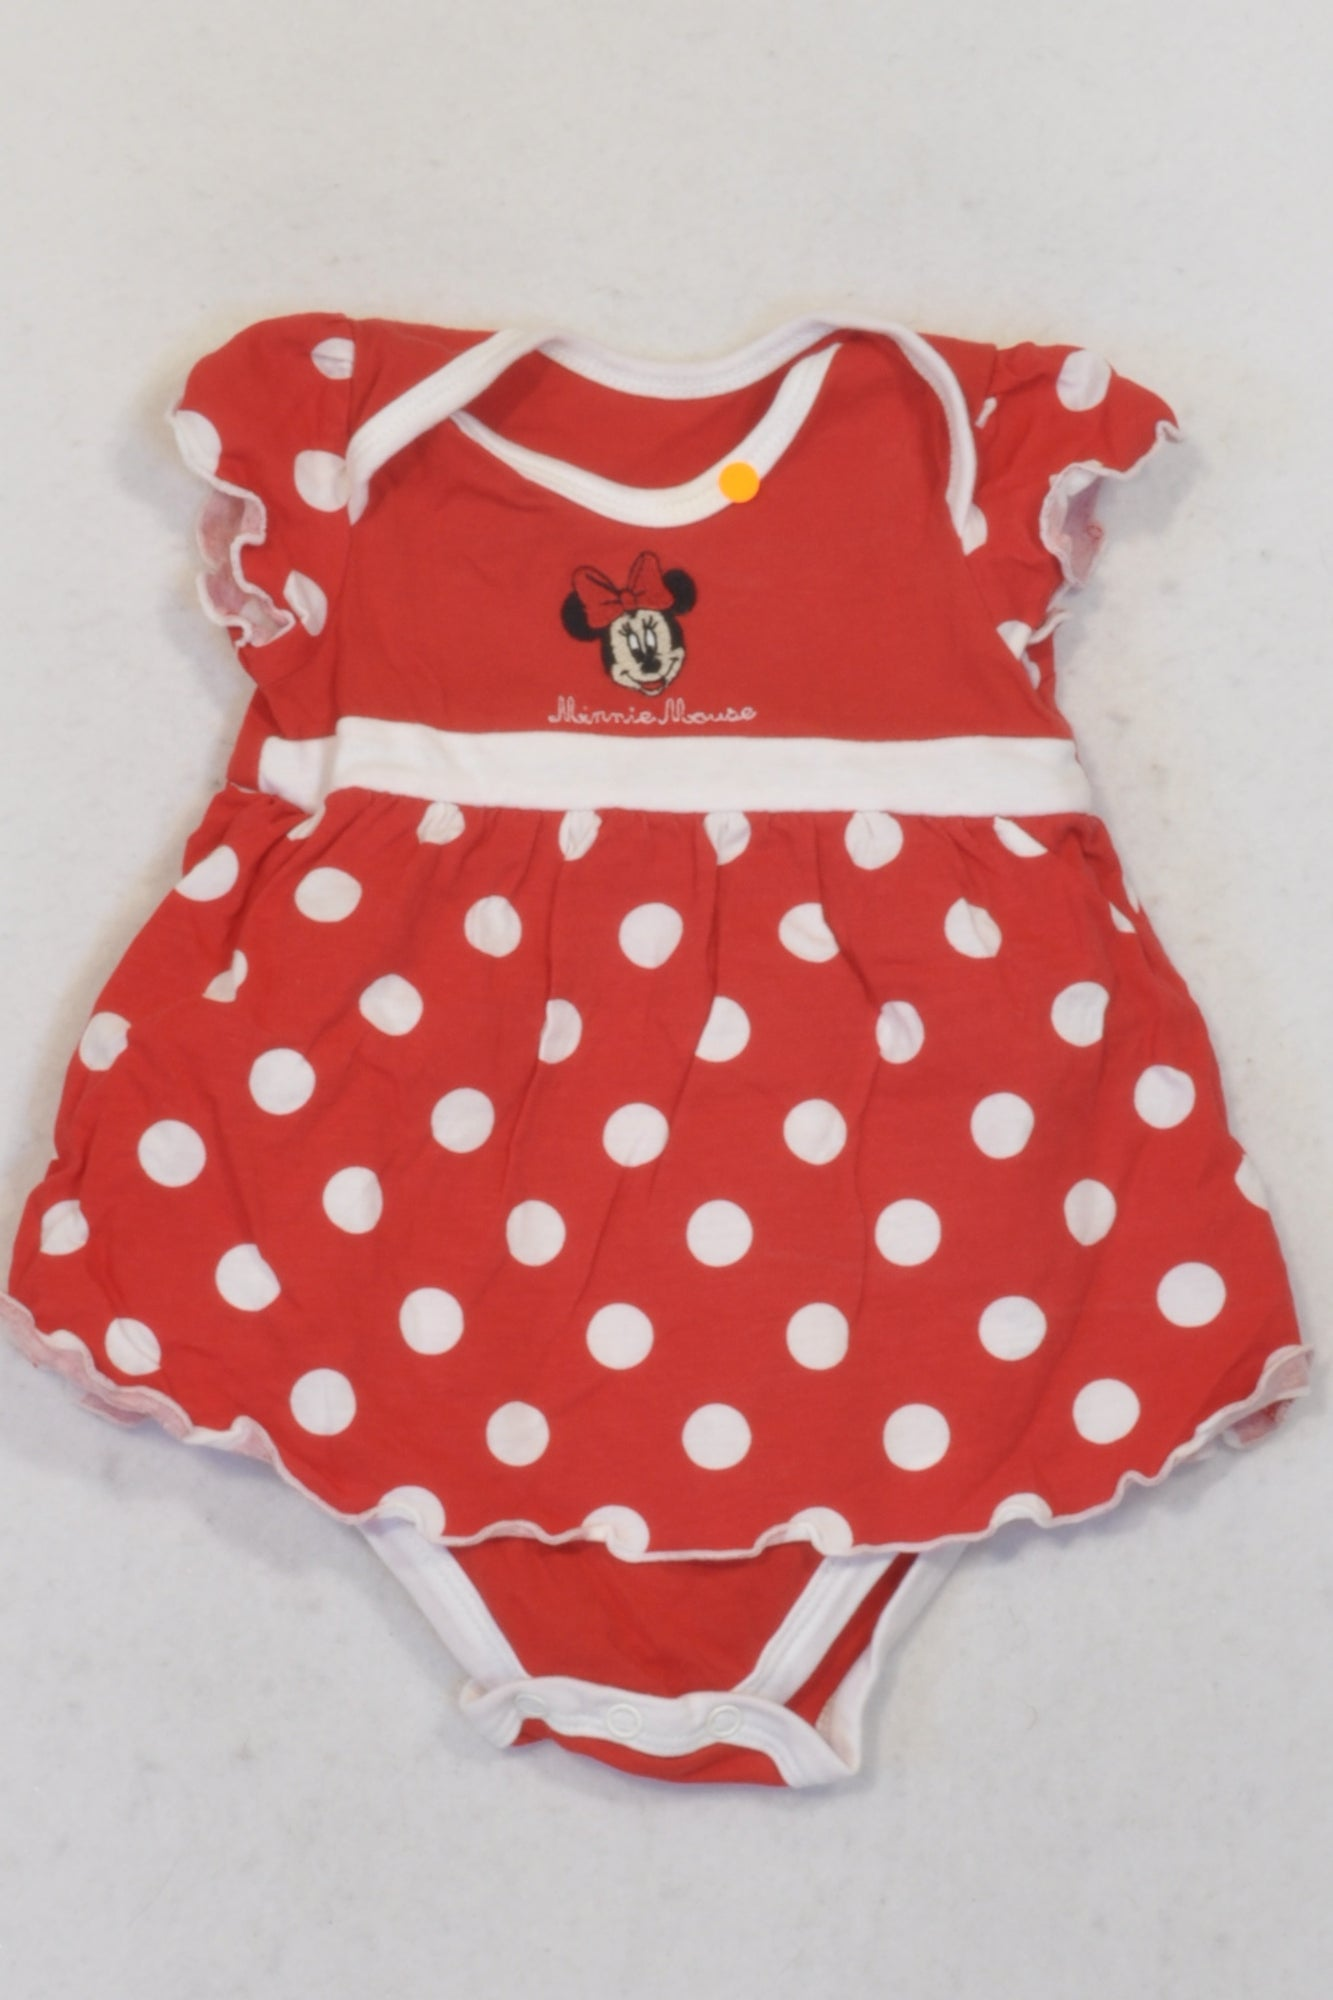 Woolworths Red Polka Dot Minnie Mouse Dress Baby Grow Girls 3-6 months